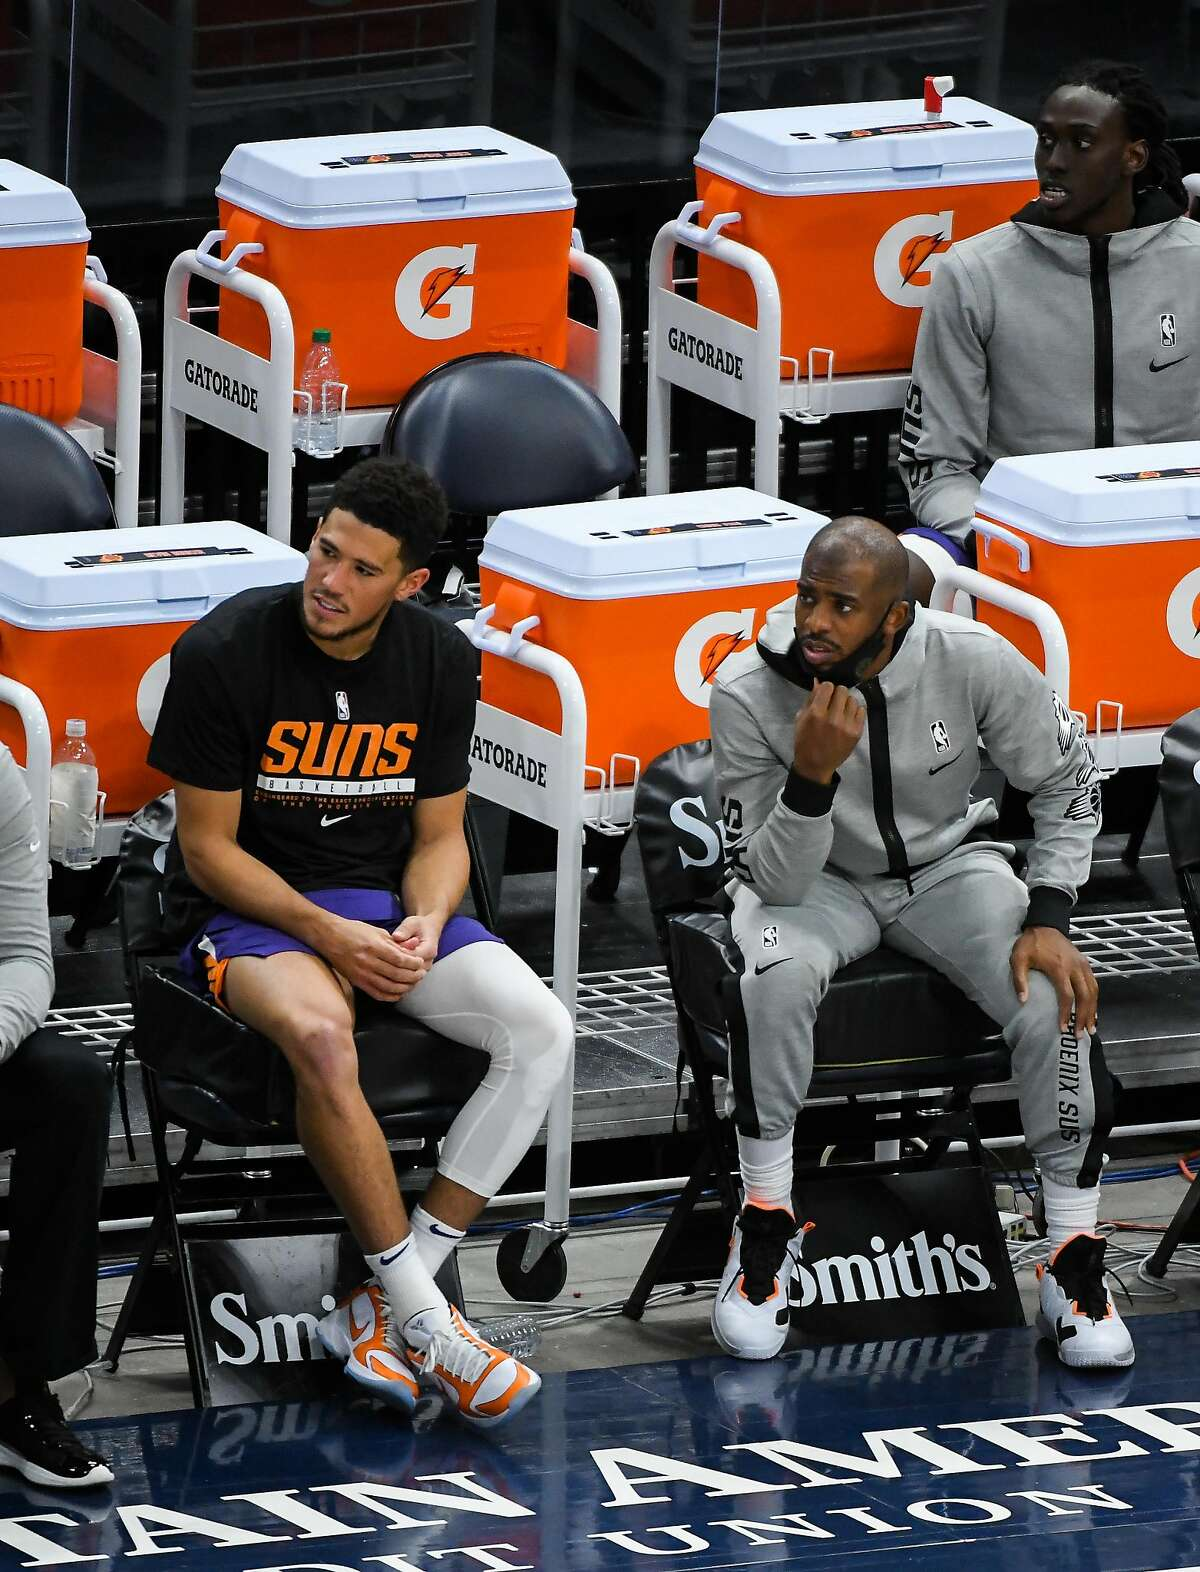 Devin Booker and his new teammate Chris Paul have the Suns off to a 7-4 start, but they've now had two games postponed.